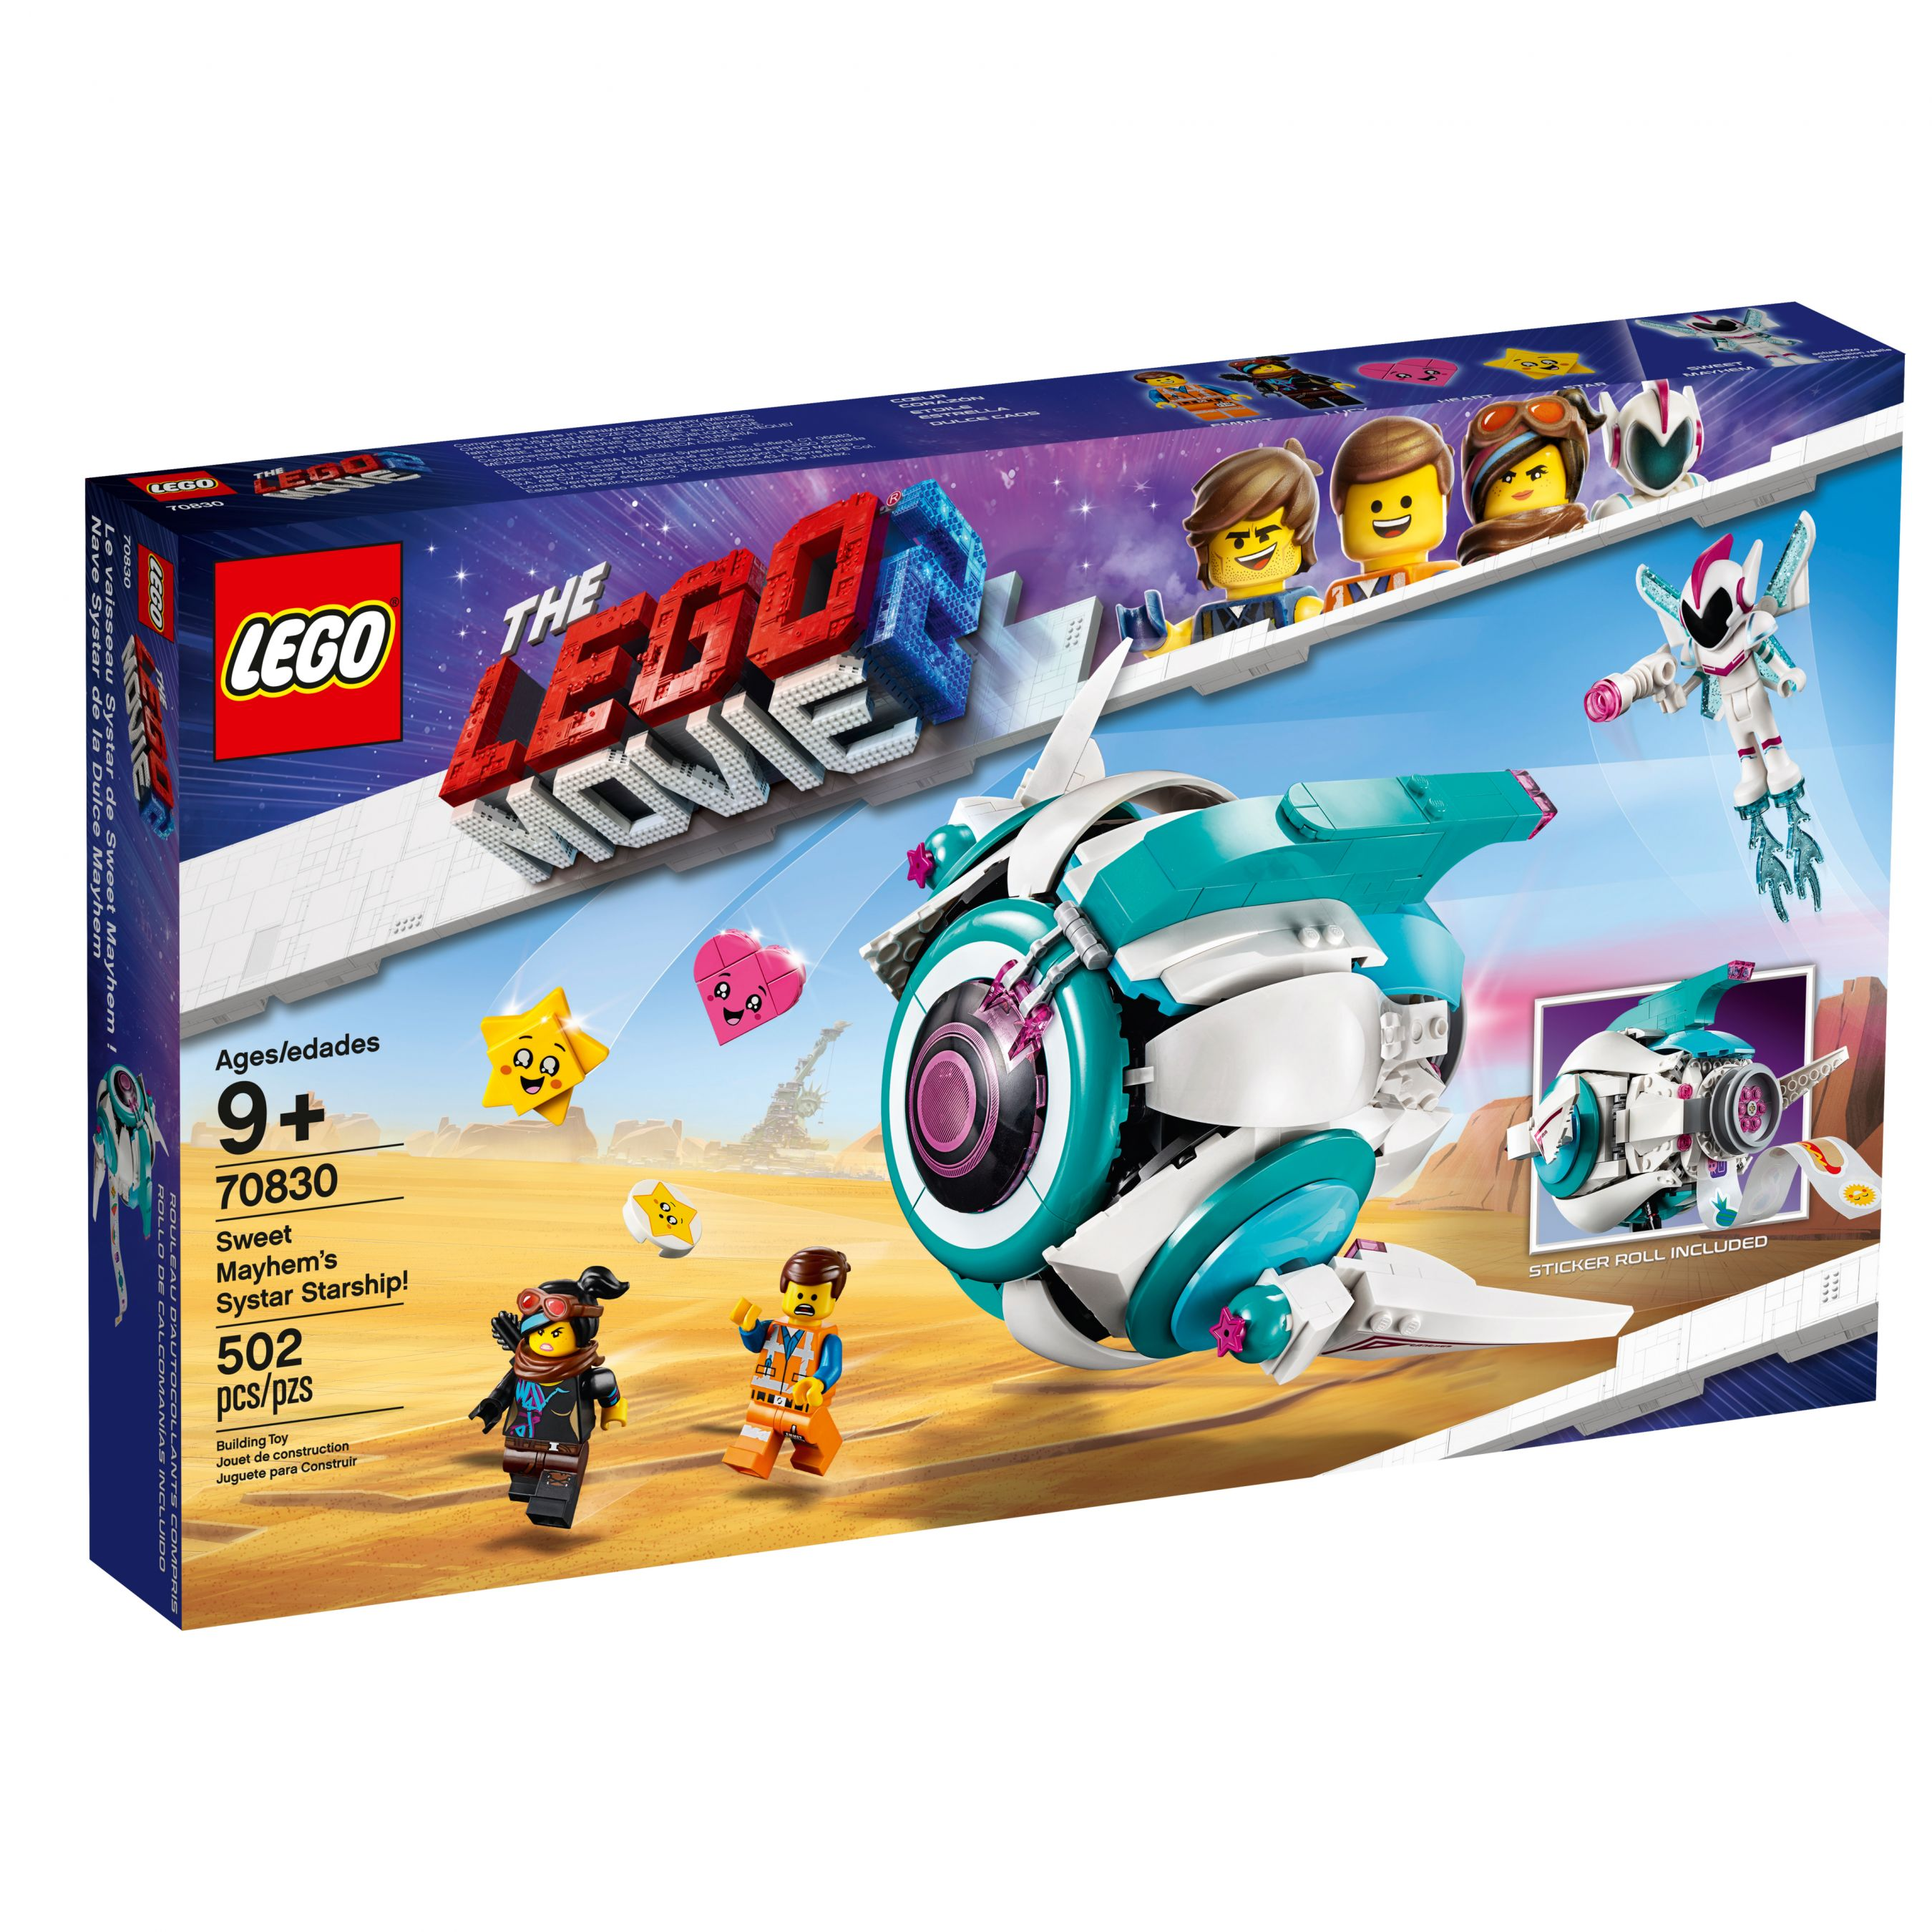 LEGO The LEGO Movie 2 70830 Sweet Mischmaschs Schwester-Raumschiff LEGO_70830_alt1.jpg